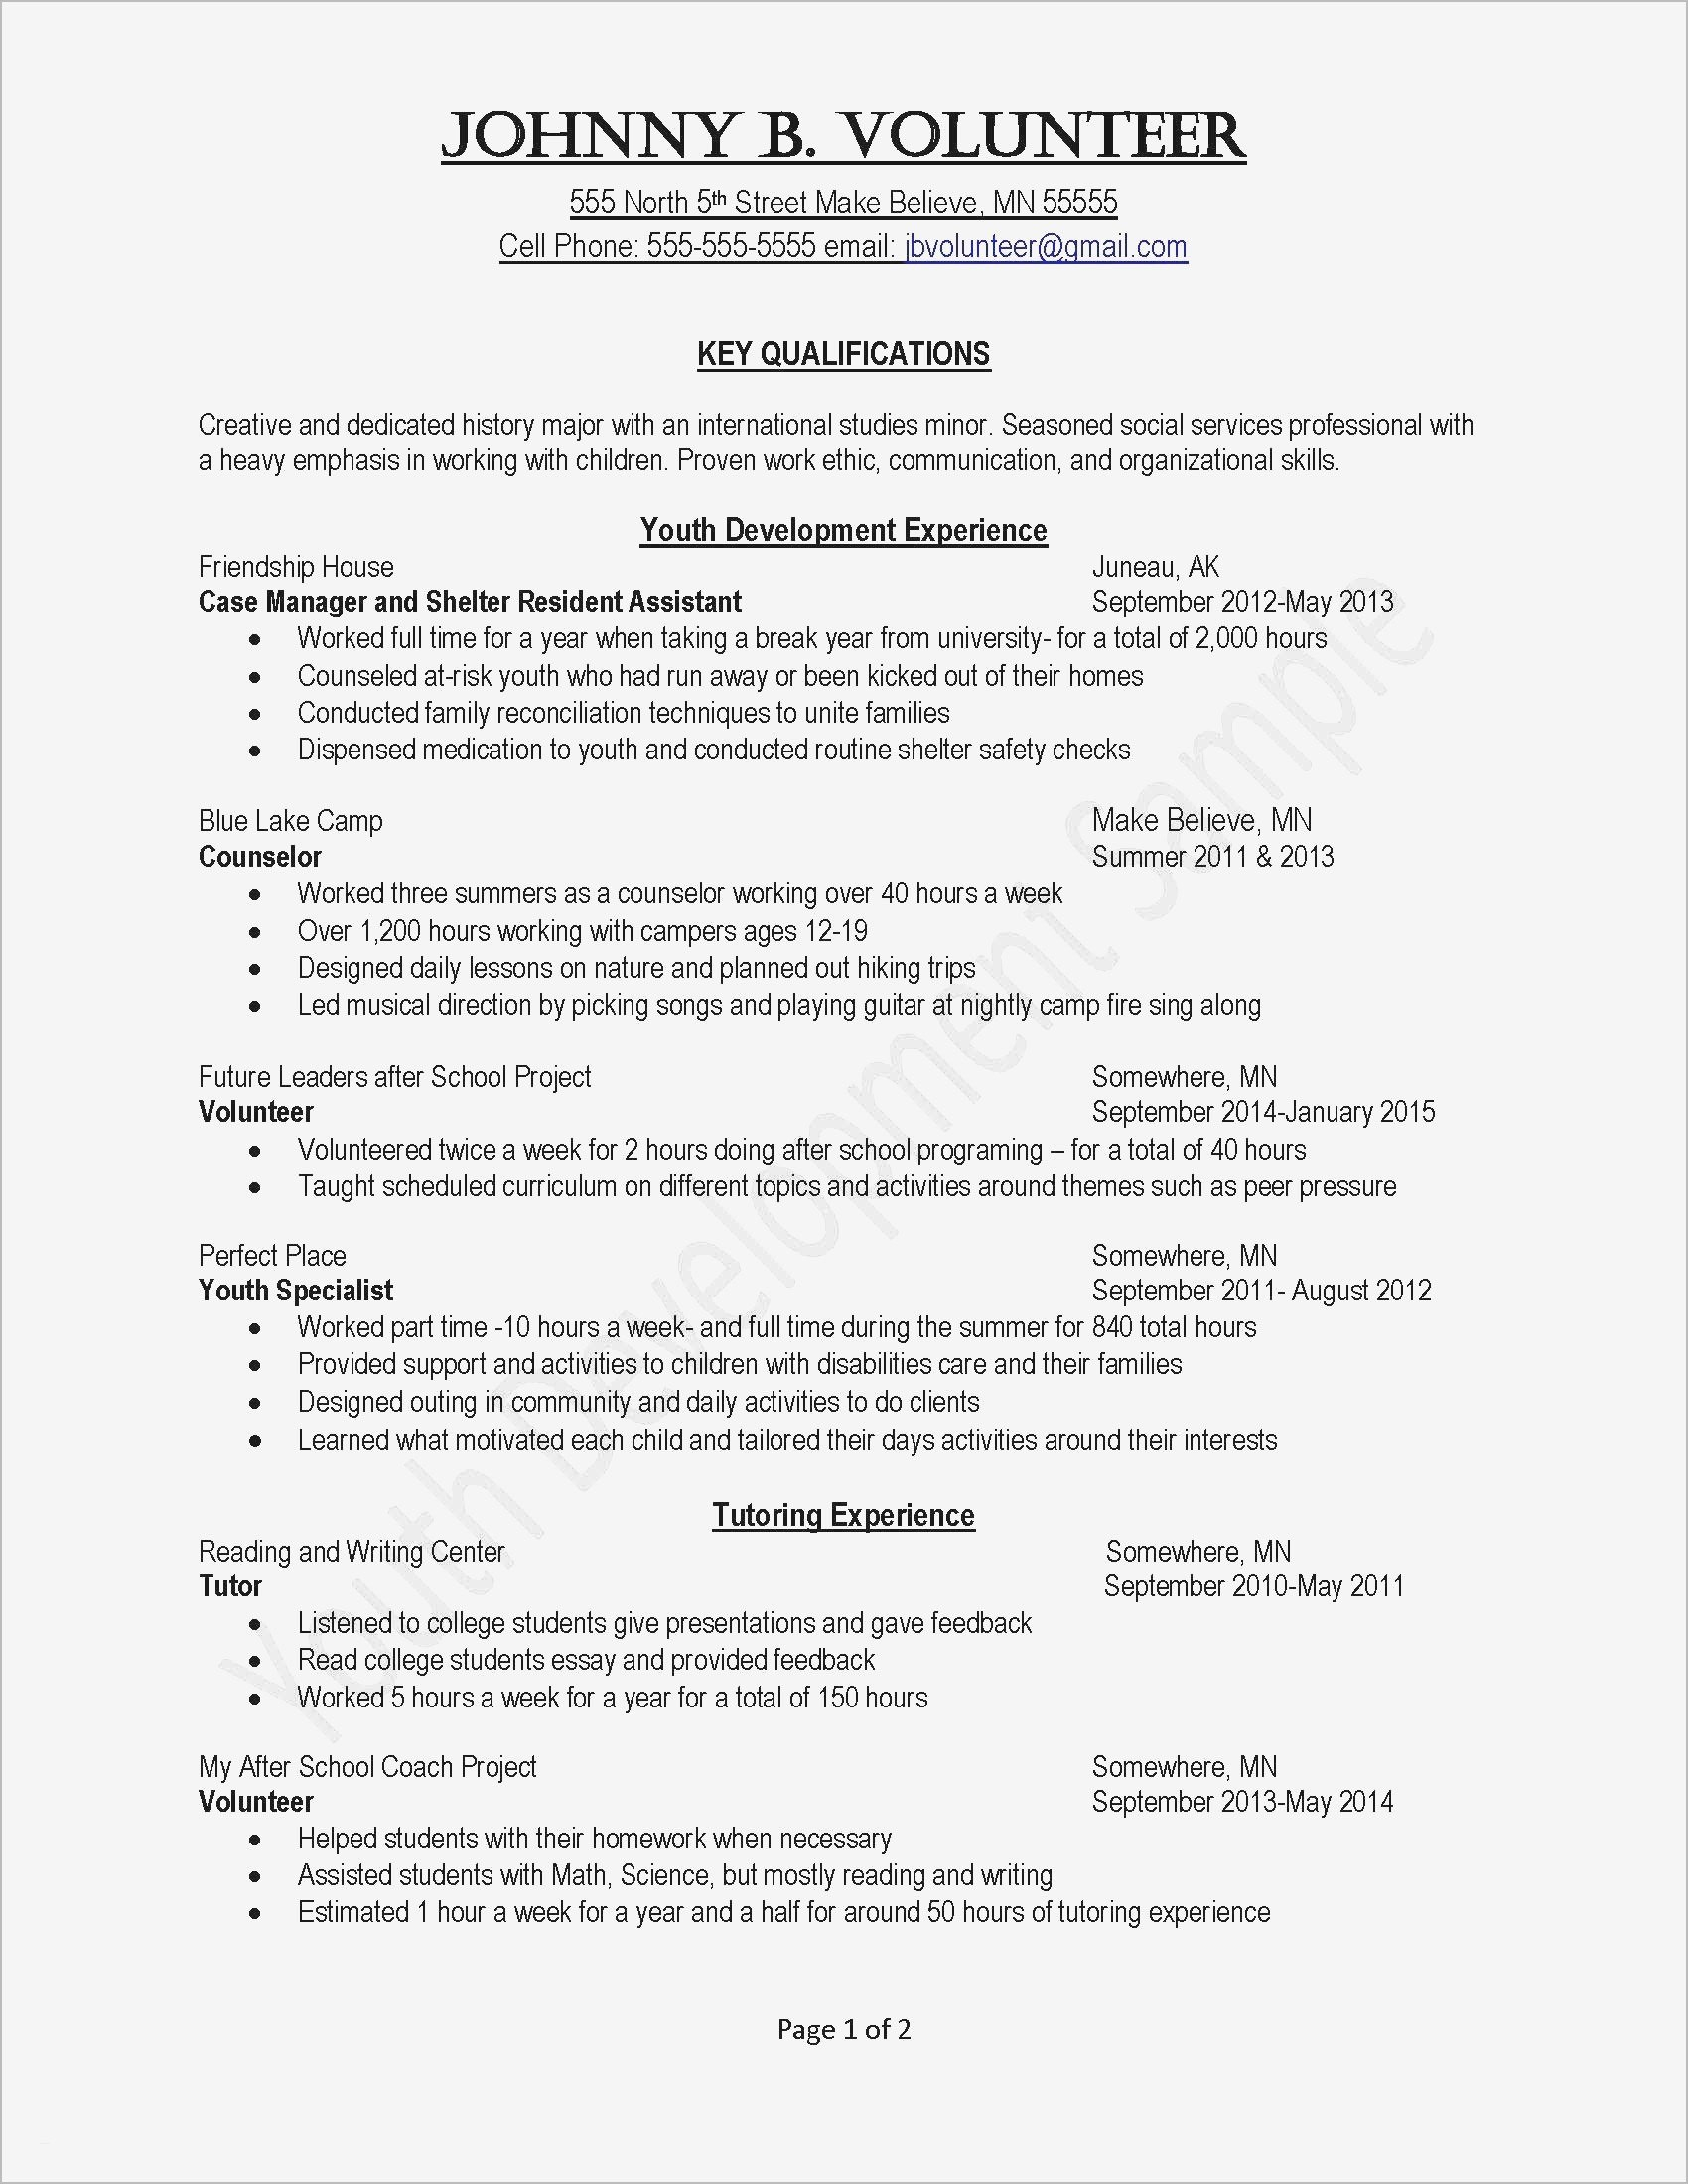 How to Make A Cover Letter Template - Job Fer Letter Template Us Copy Od Consultant Cover Letter Fungram